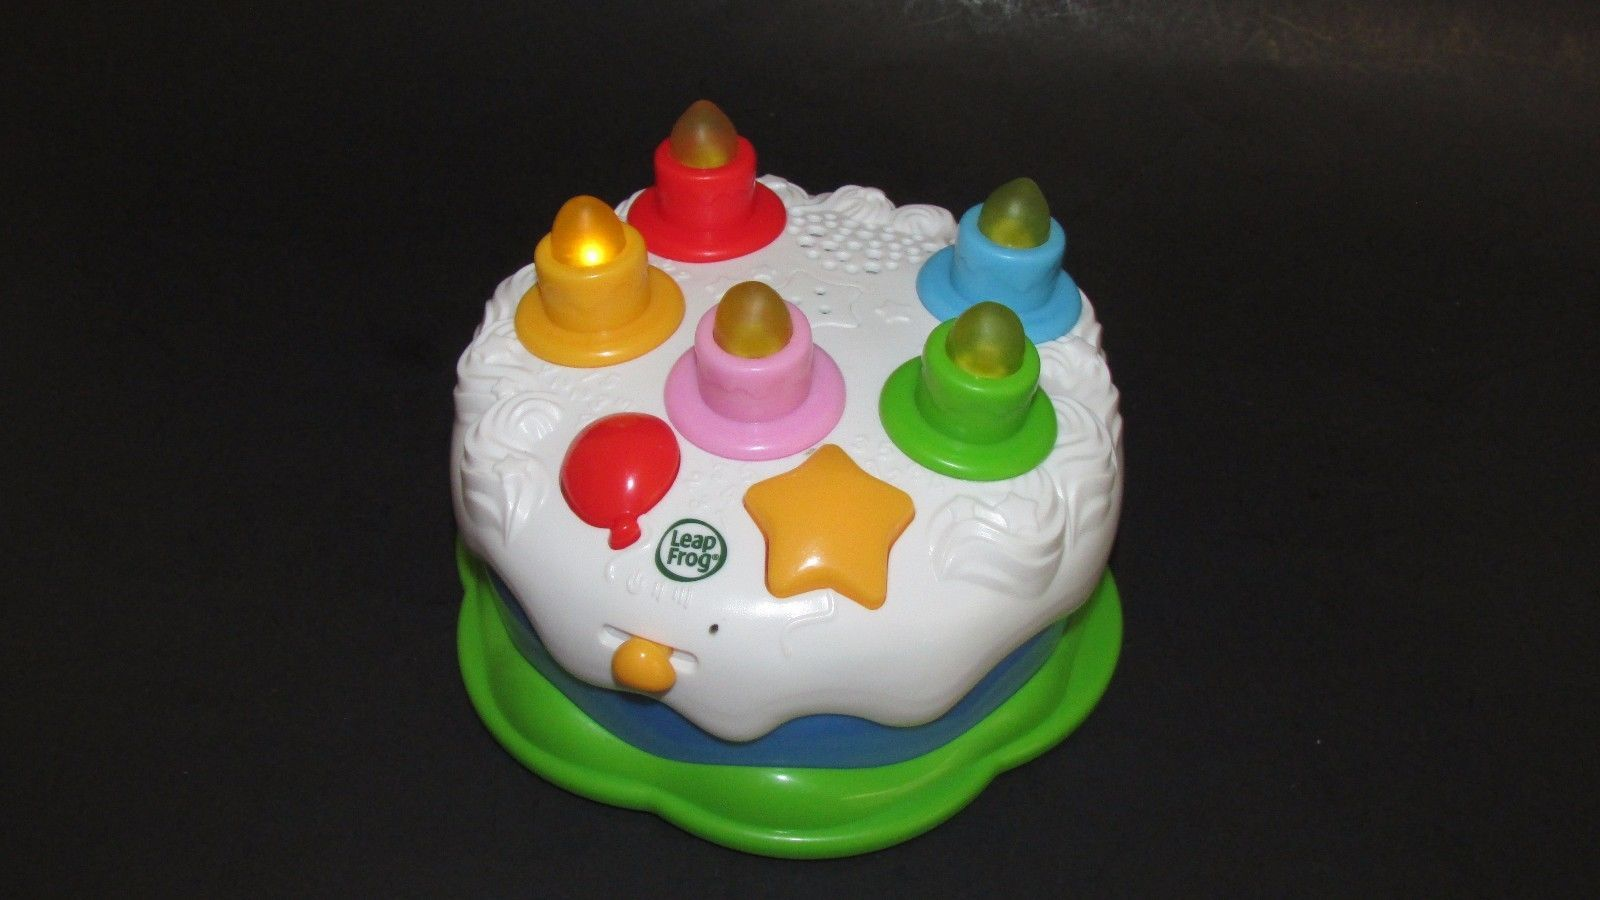 LeapFrog Birthday Cake Counting Blow Out Candles Lights Sounds Musical Toy Sings